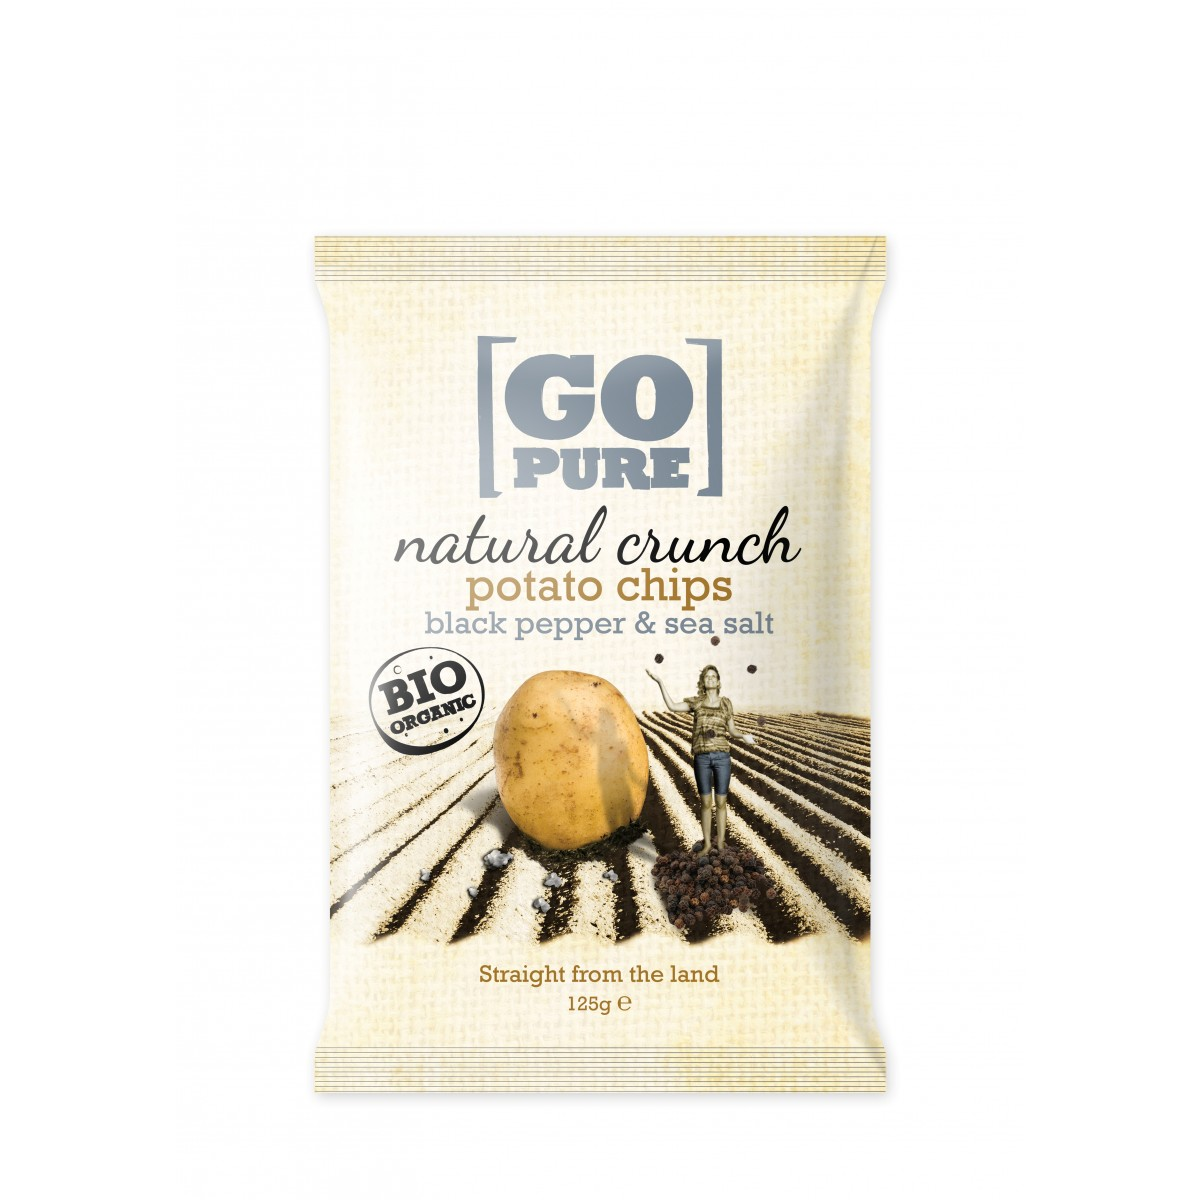 Natural Crunch Potato Chips Black Pepper & Sea Salt